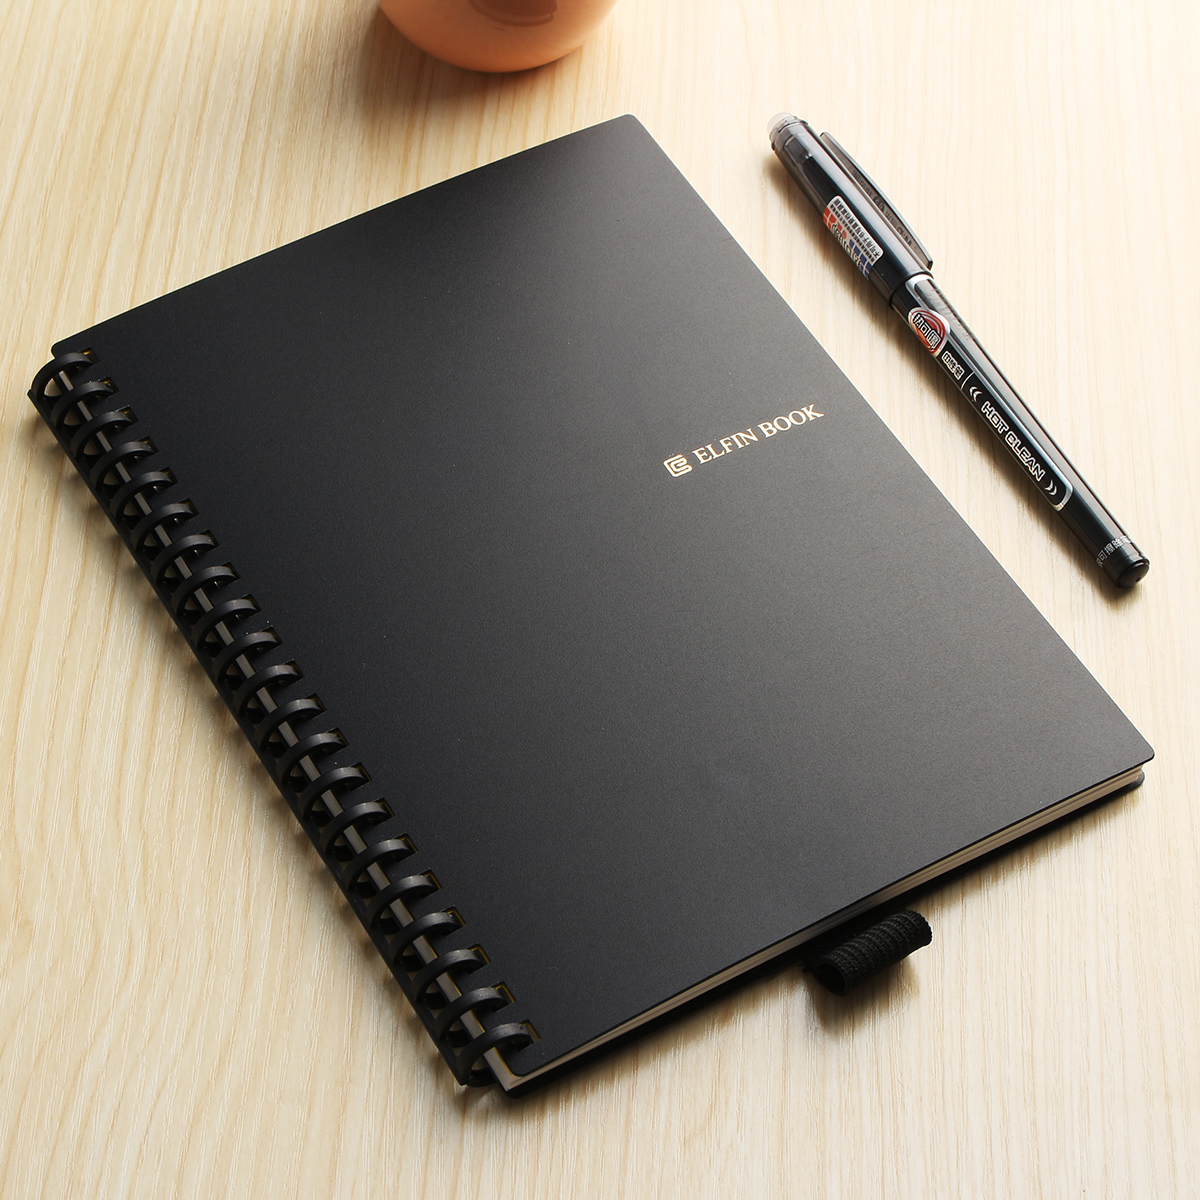 B5 Elfinbook 2.0 Smart Reusable Erasable Notebook Microwave Wave Cloud Erase Lined Notepad With Pen